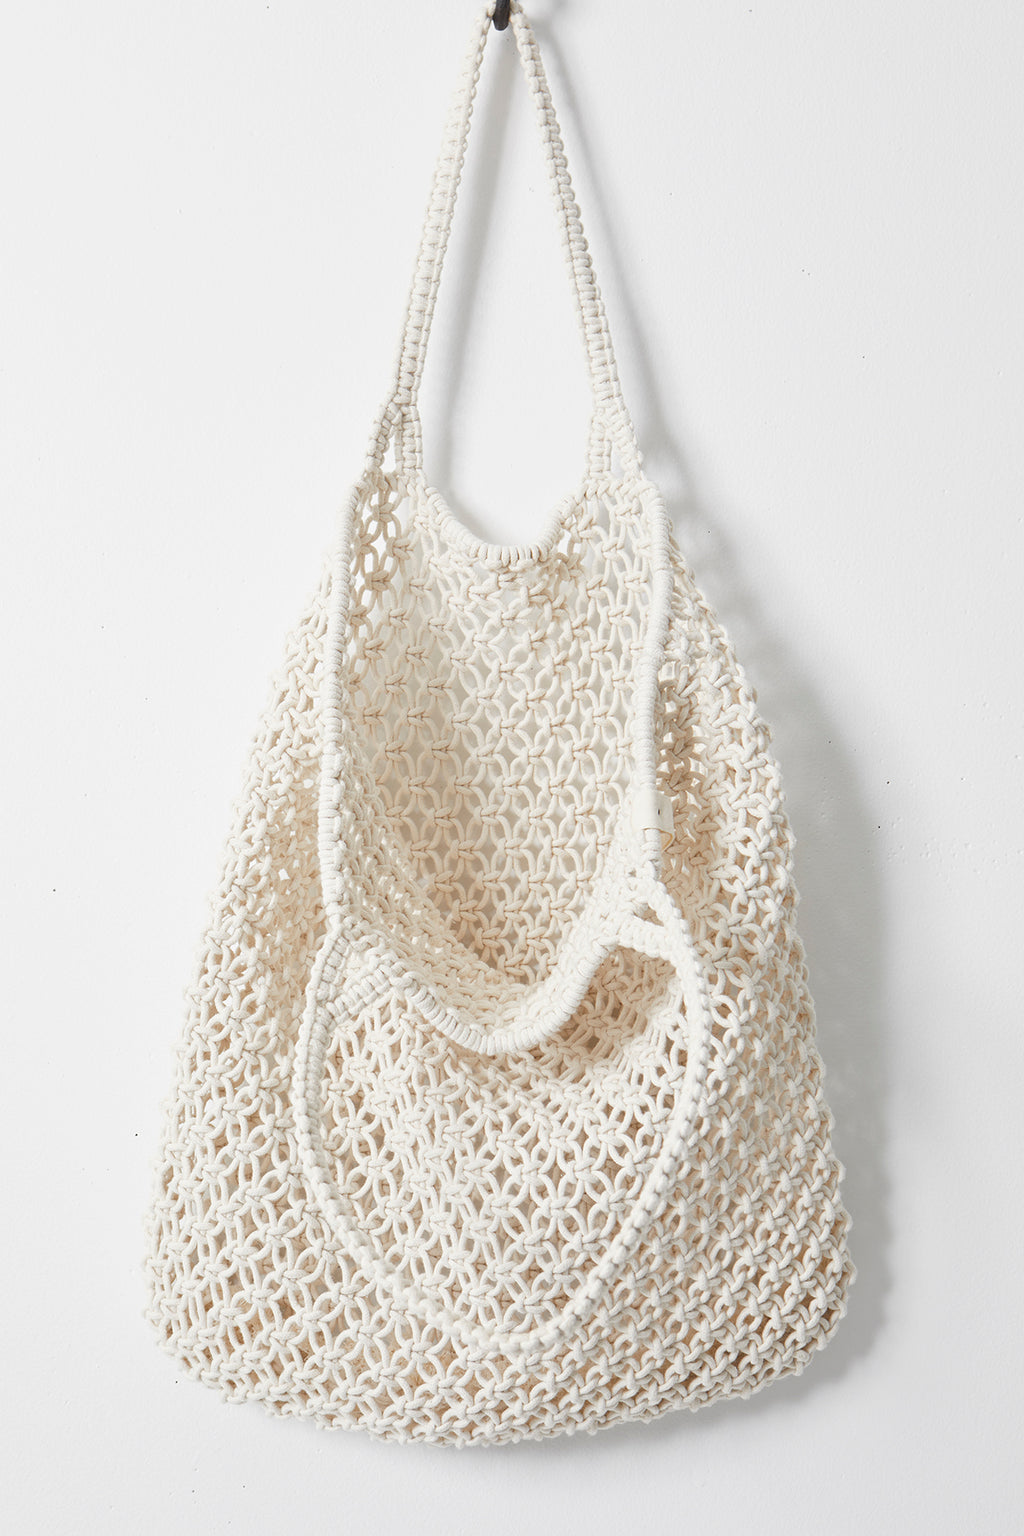 The Beach People Macrame Tote Bag, White